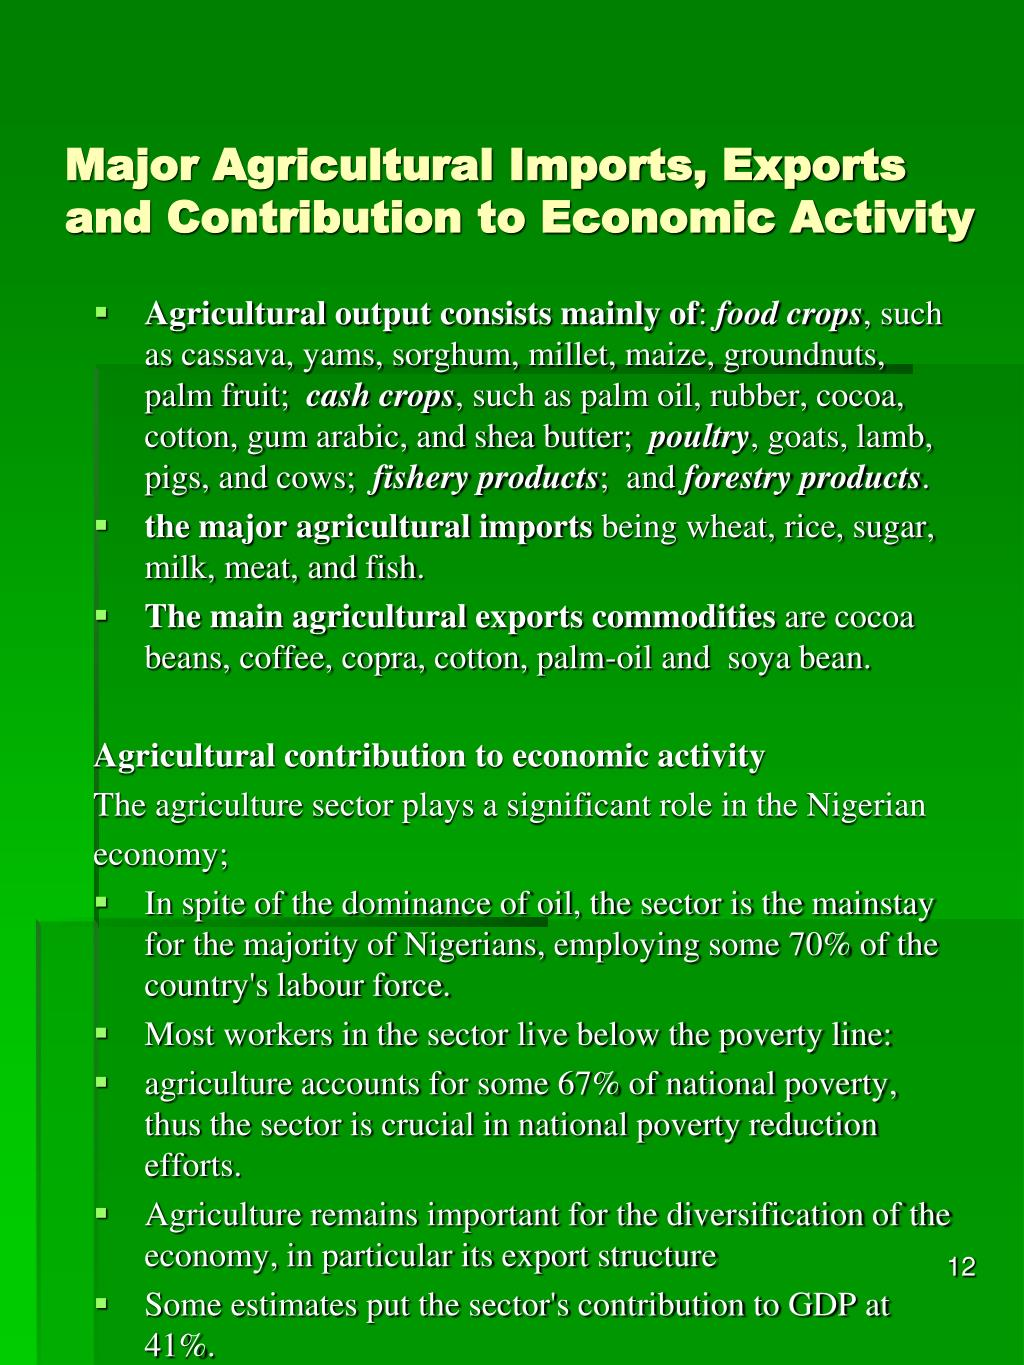 Major Agricultural Imports, Exports and Contribution to Economic Activity